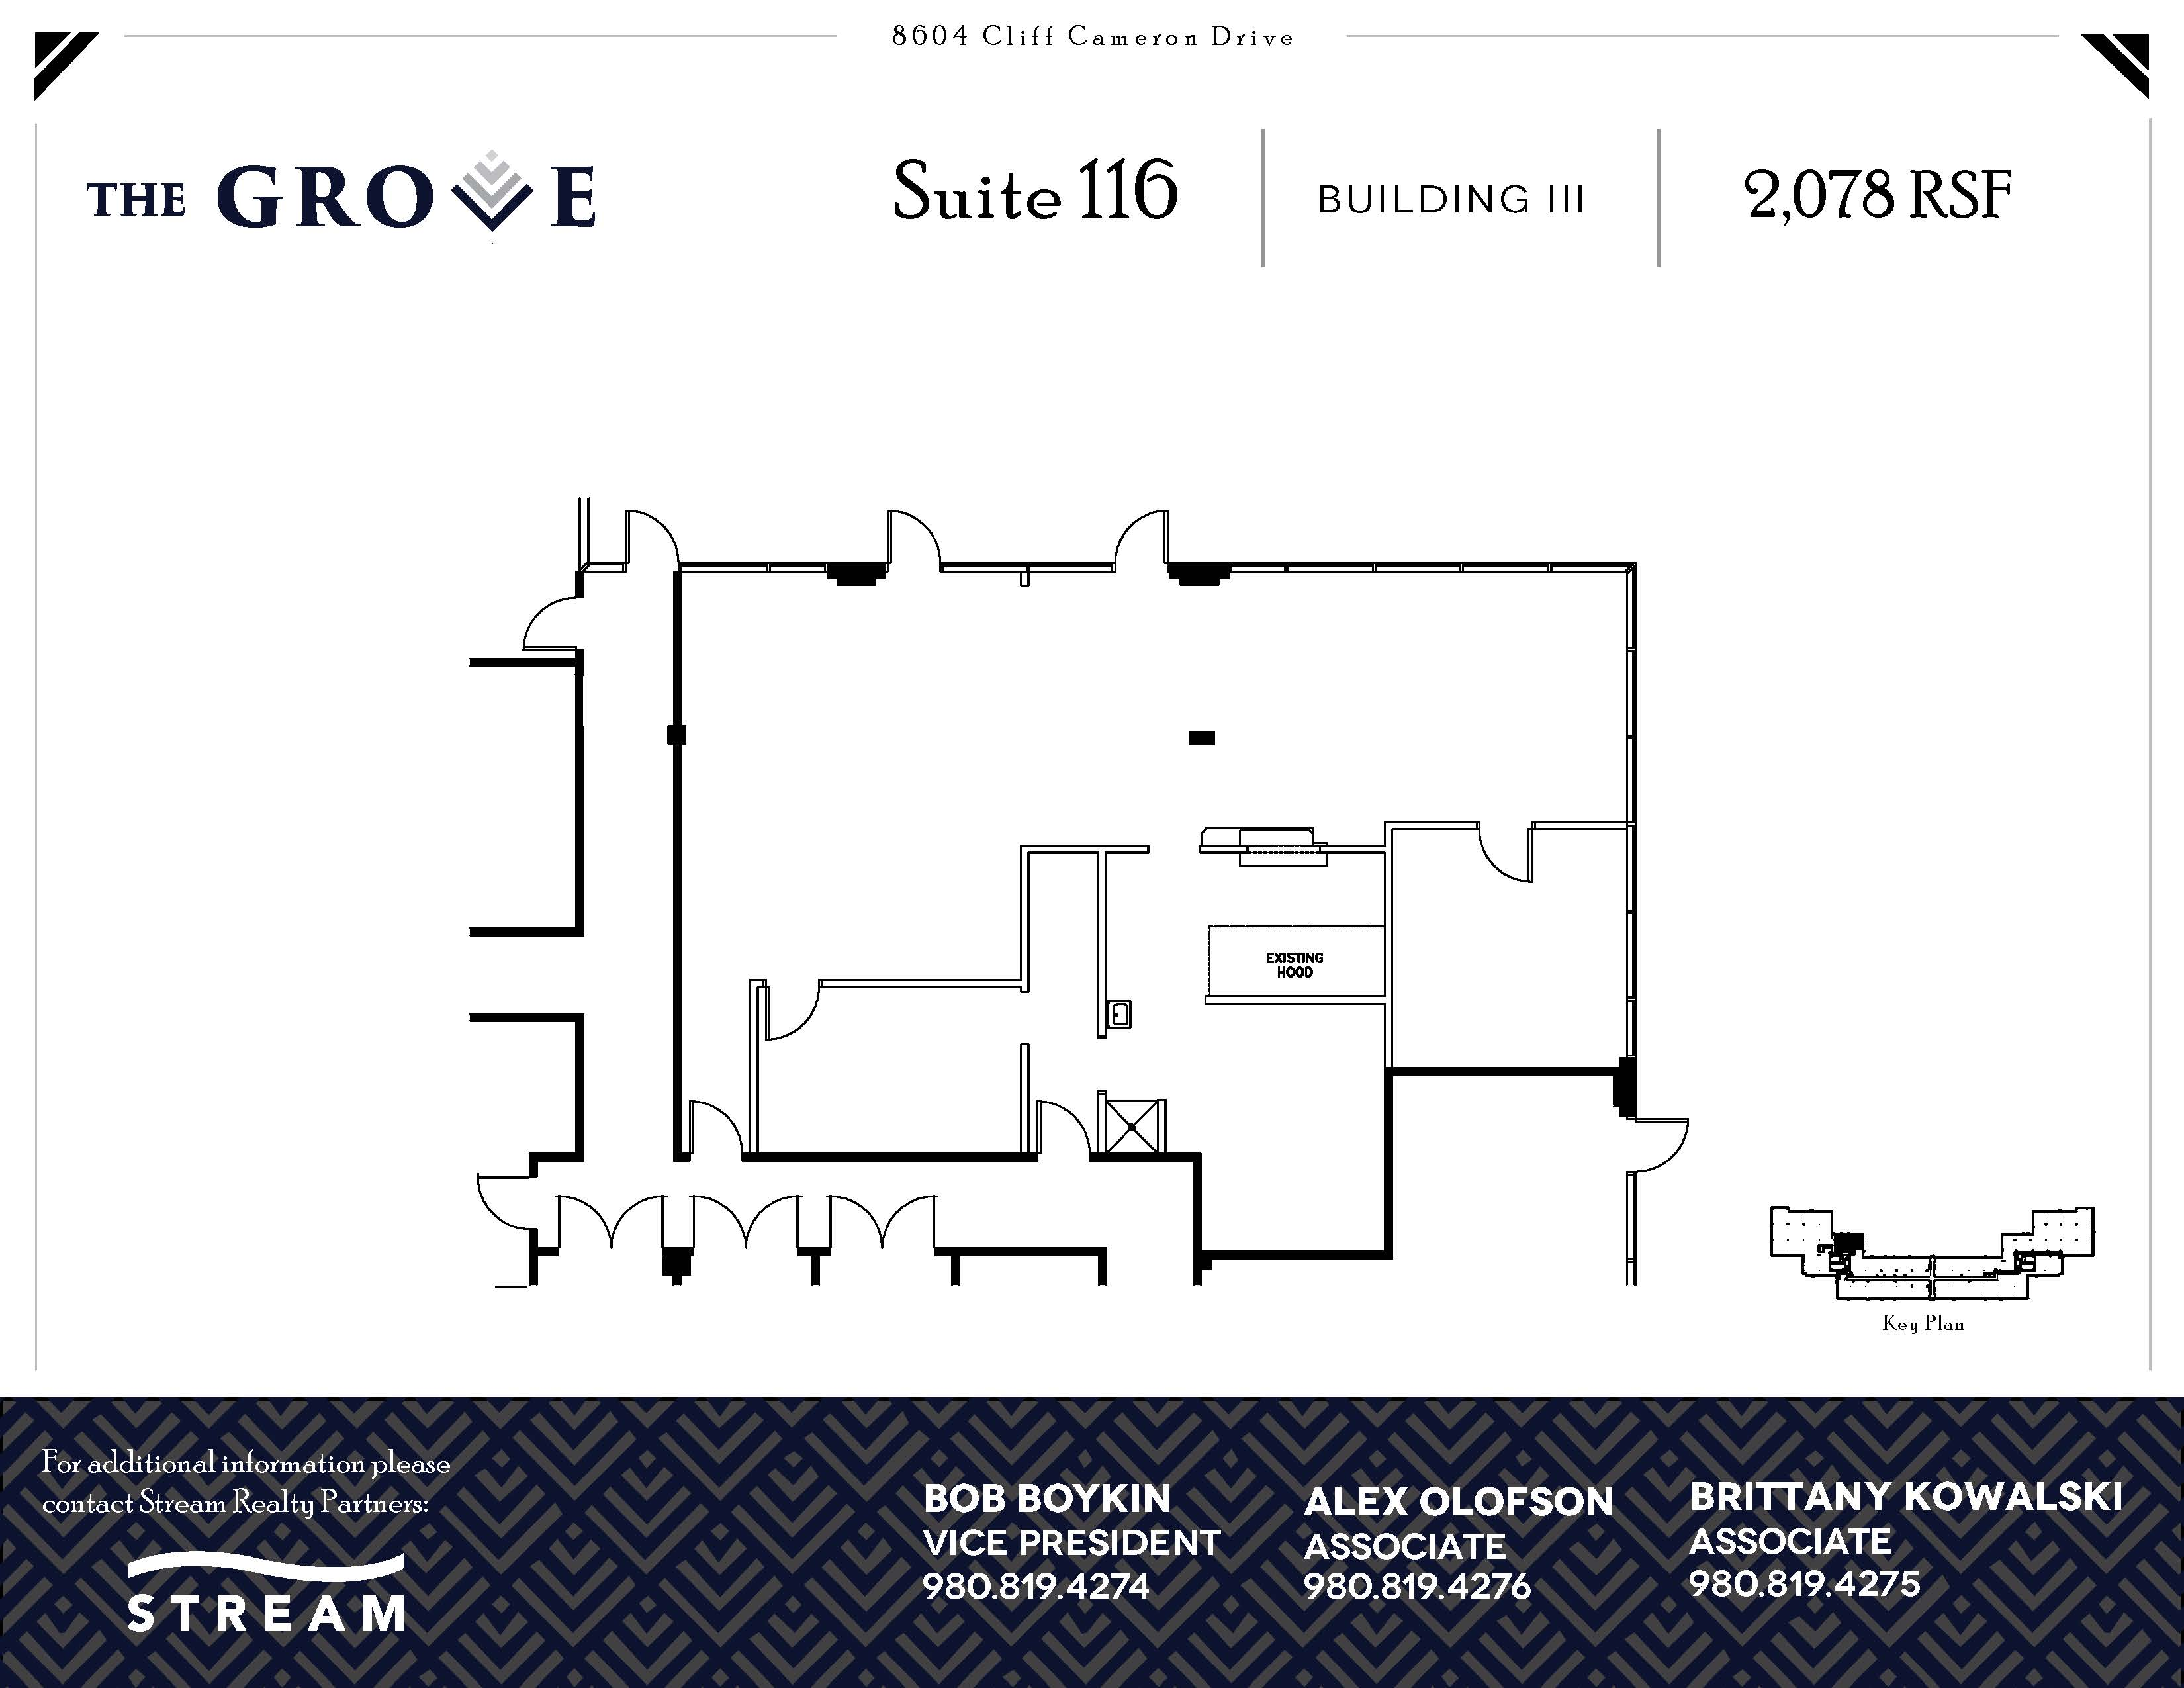 The Grove III [8604] -- Suite 116 -- 2,0